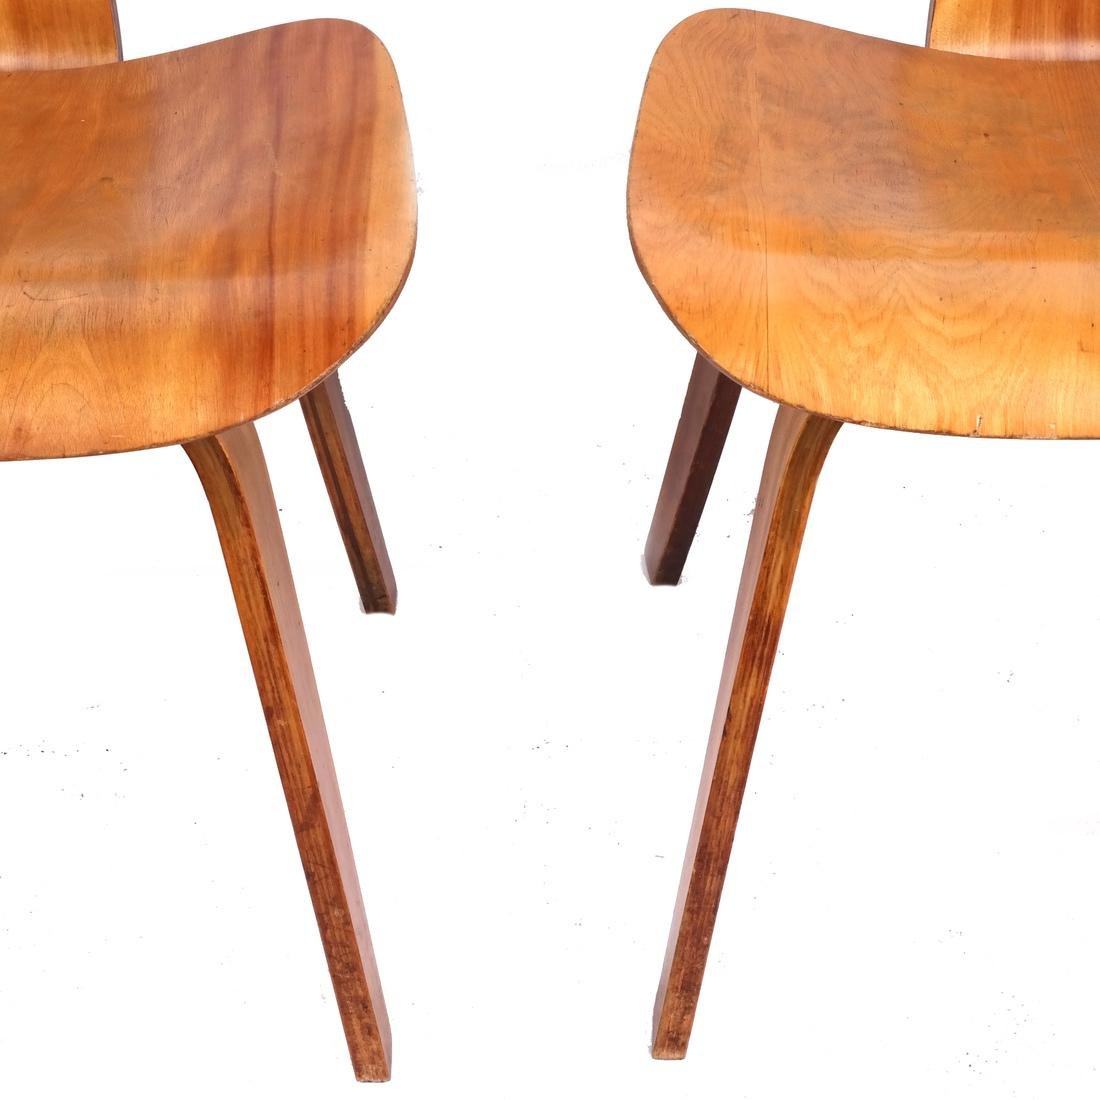 Charles Eames for Herman Miller DCW Chairs - 4